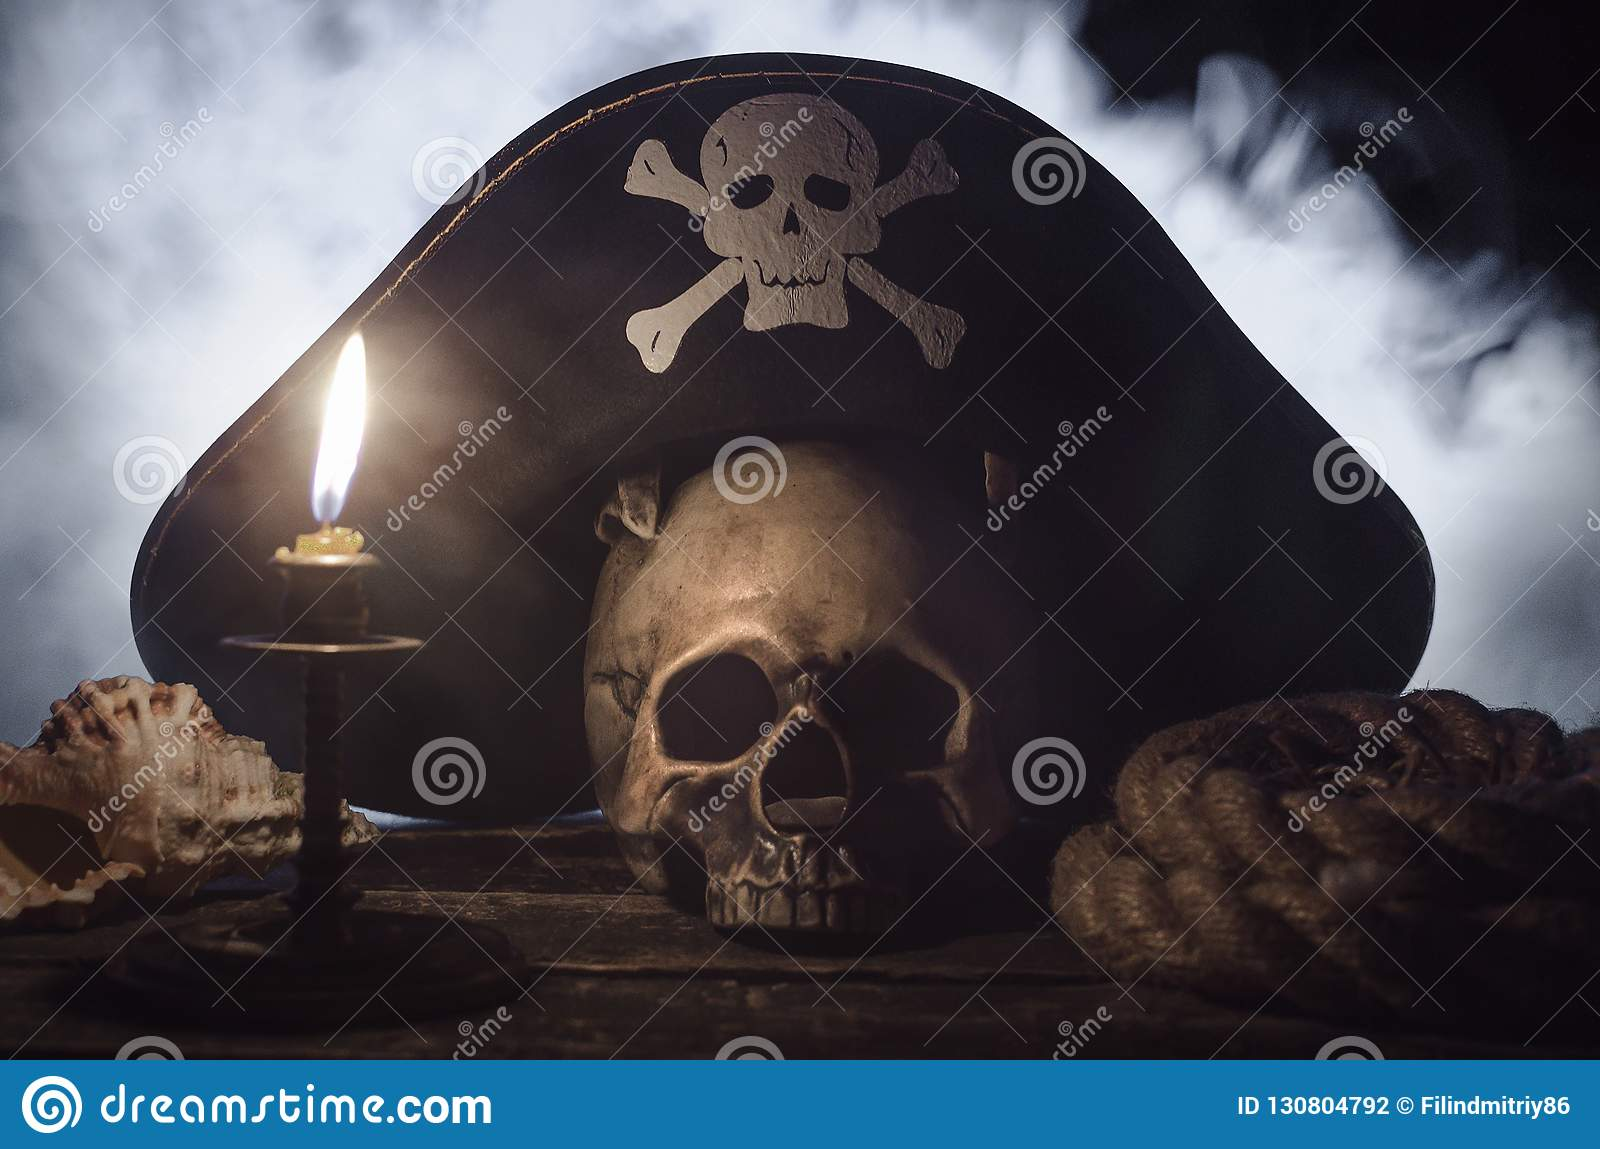 Pirate hat above a human skull.